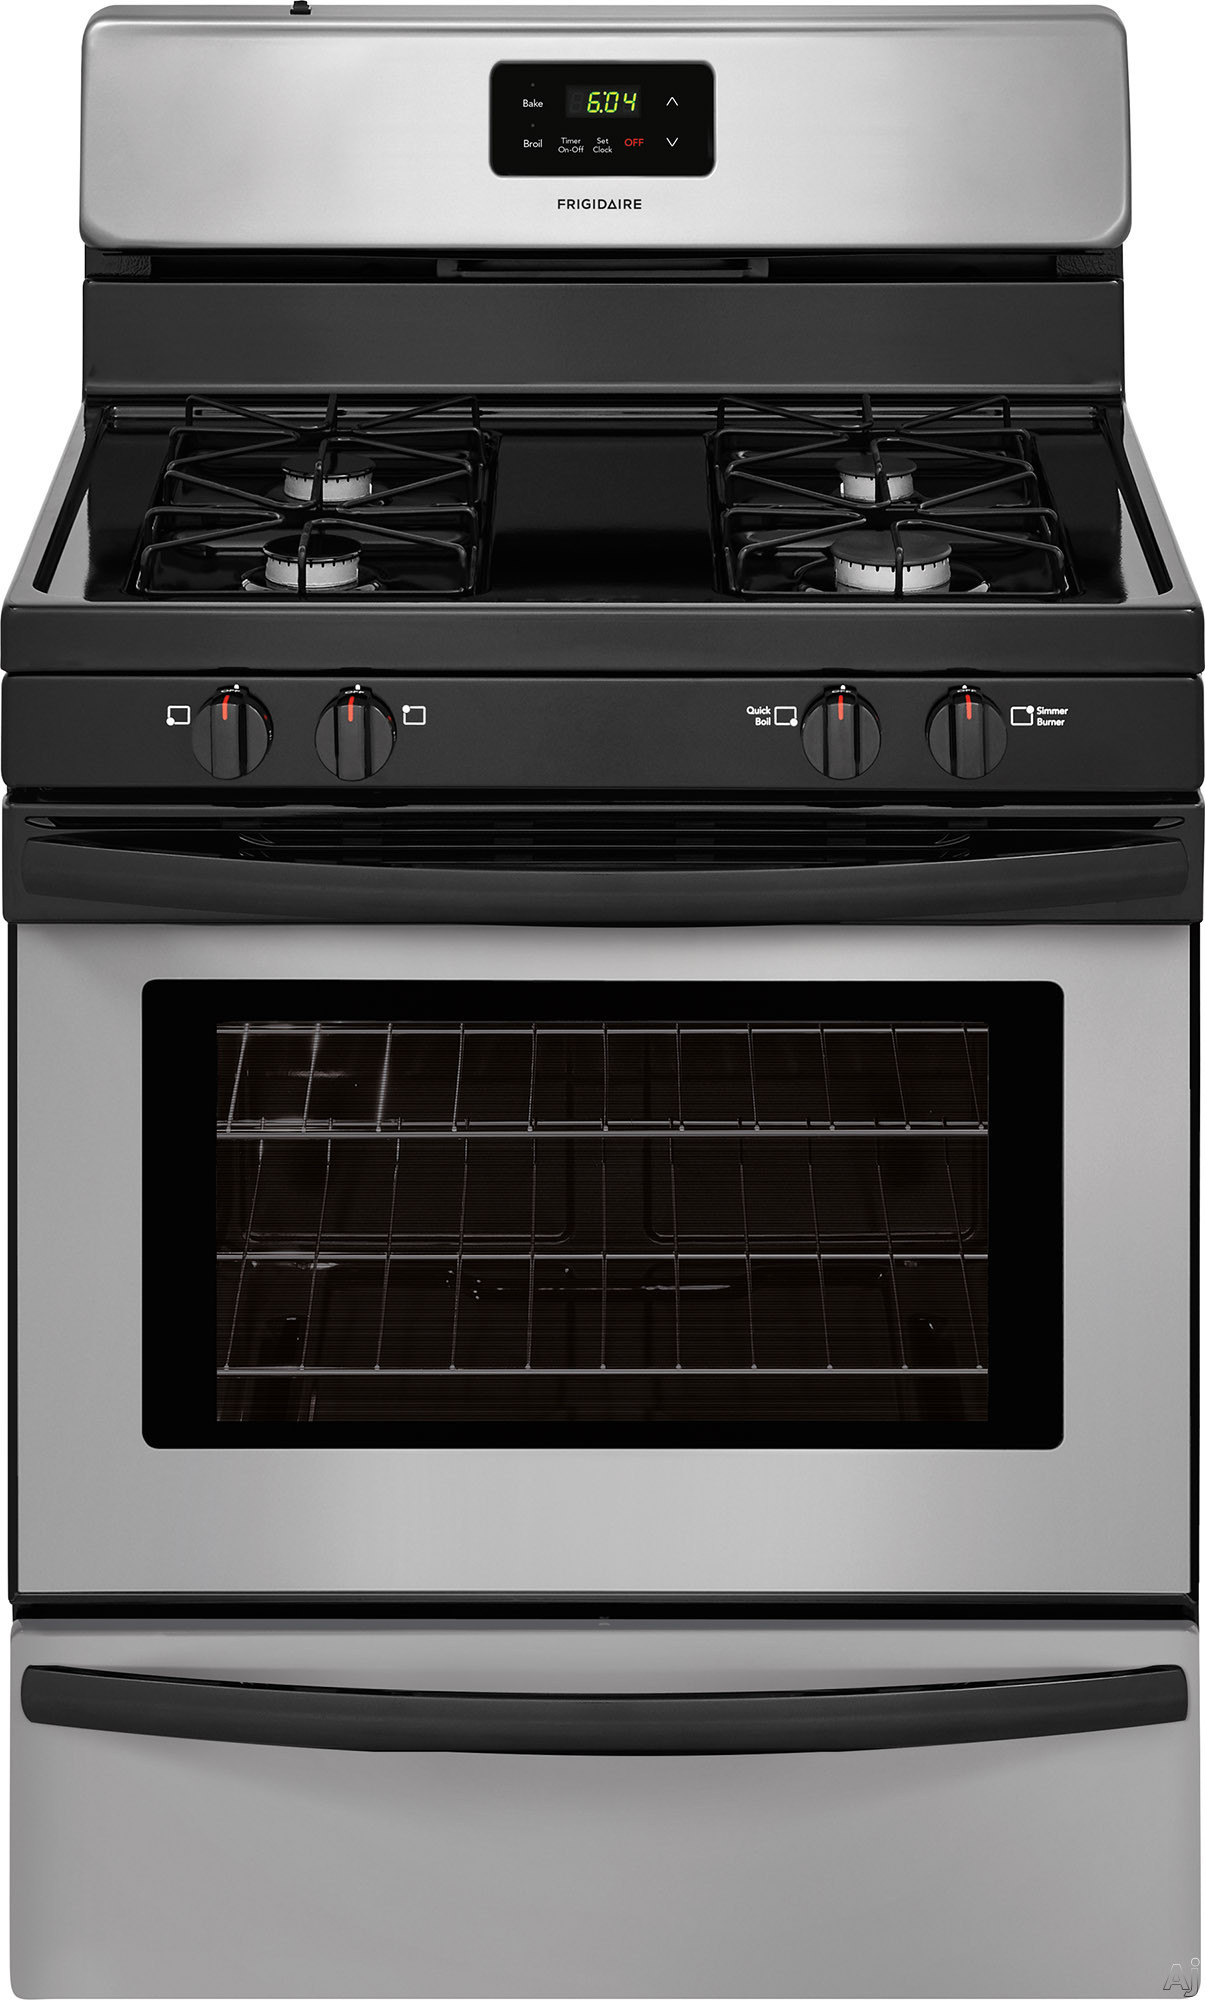 Frigidaire FFGF3016TM 30 Inch Freestanding Gas Range with Simmer Burner, Broiler Drawer, 4 Sealed Burners and 4.2 cu. ft. Capacity: Stainless Steel